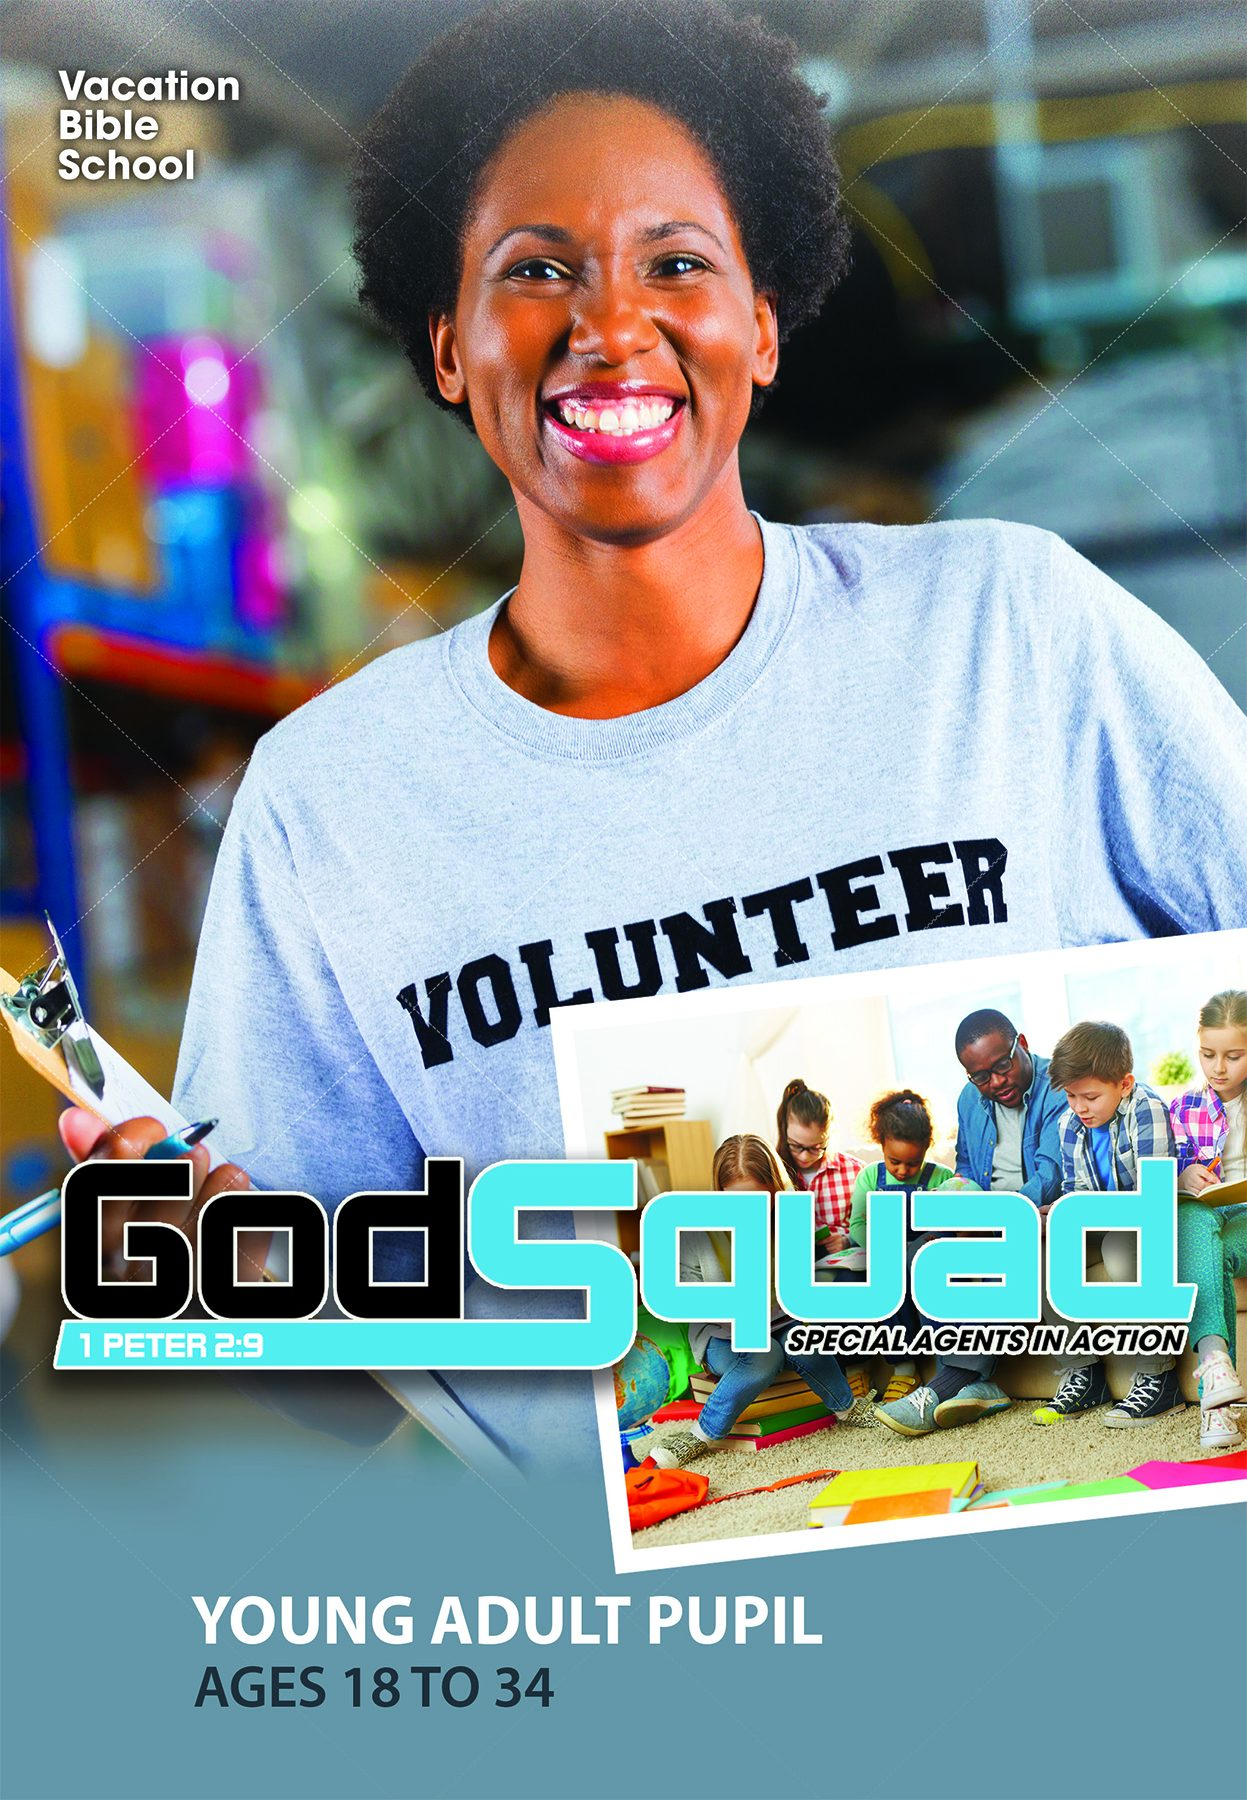 VBS GodSquad Young Adult Pupil 2018